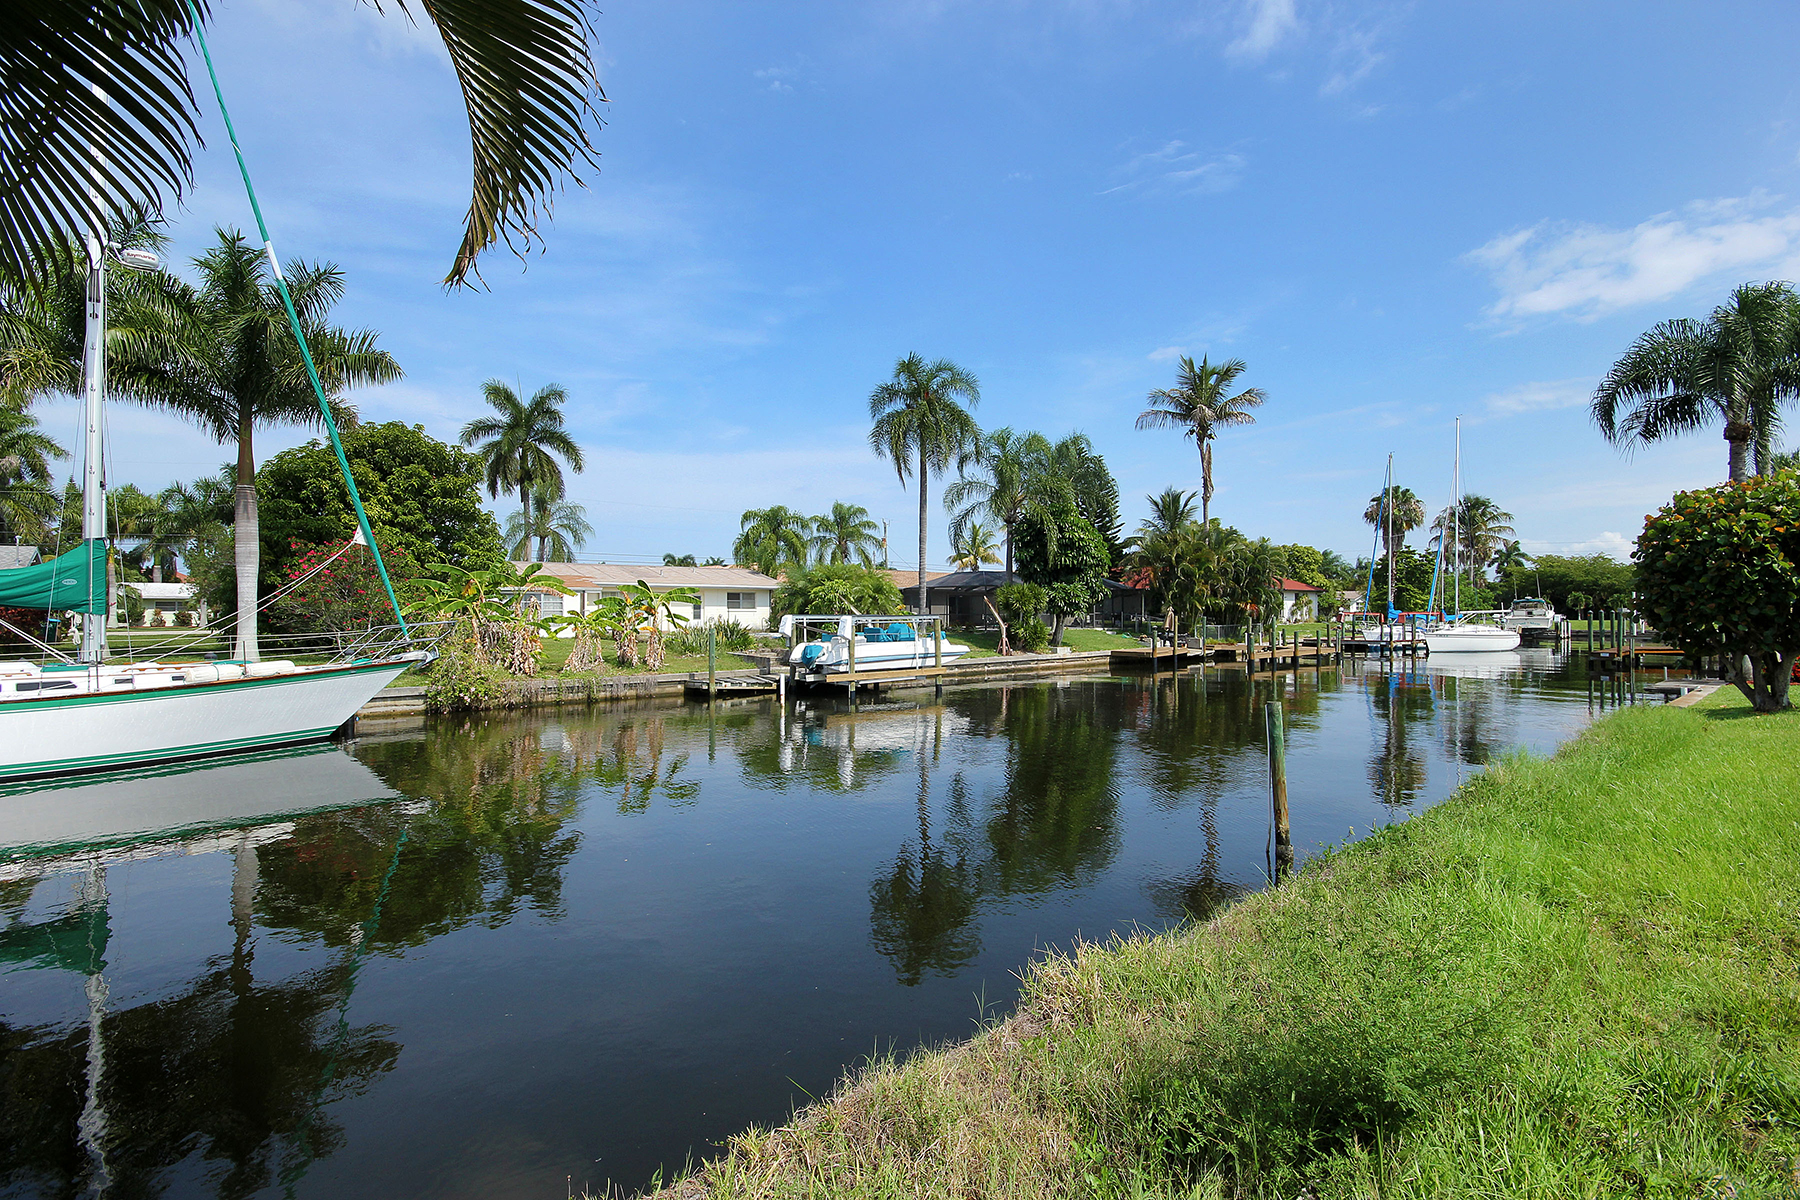 Additional photo for property listing at CAPE CORAL 5318  Colonade Ct,  Cape Coral, Florida 33904 United States